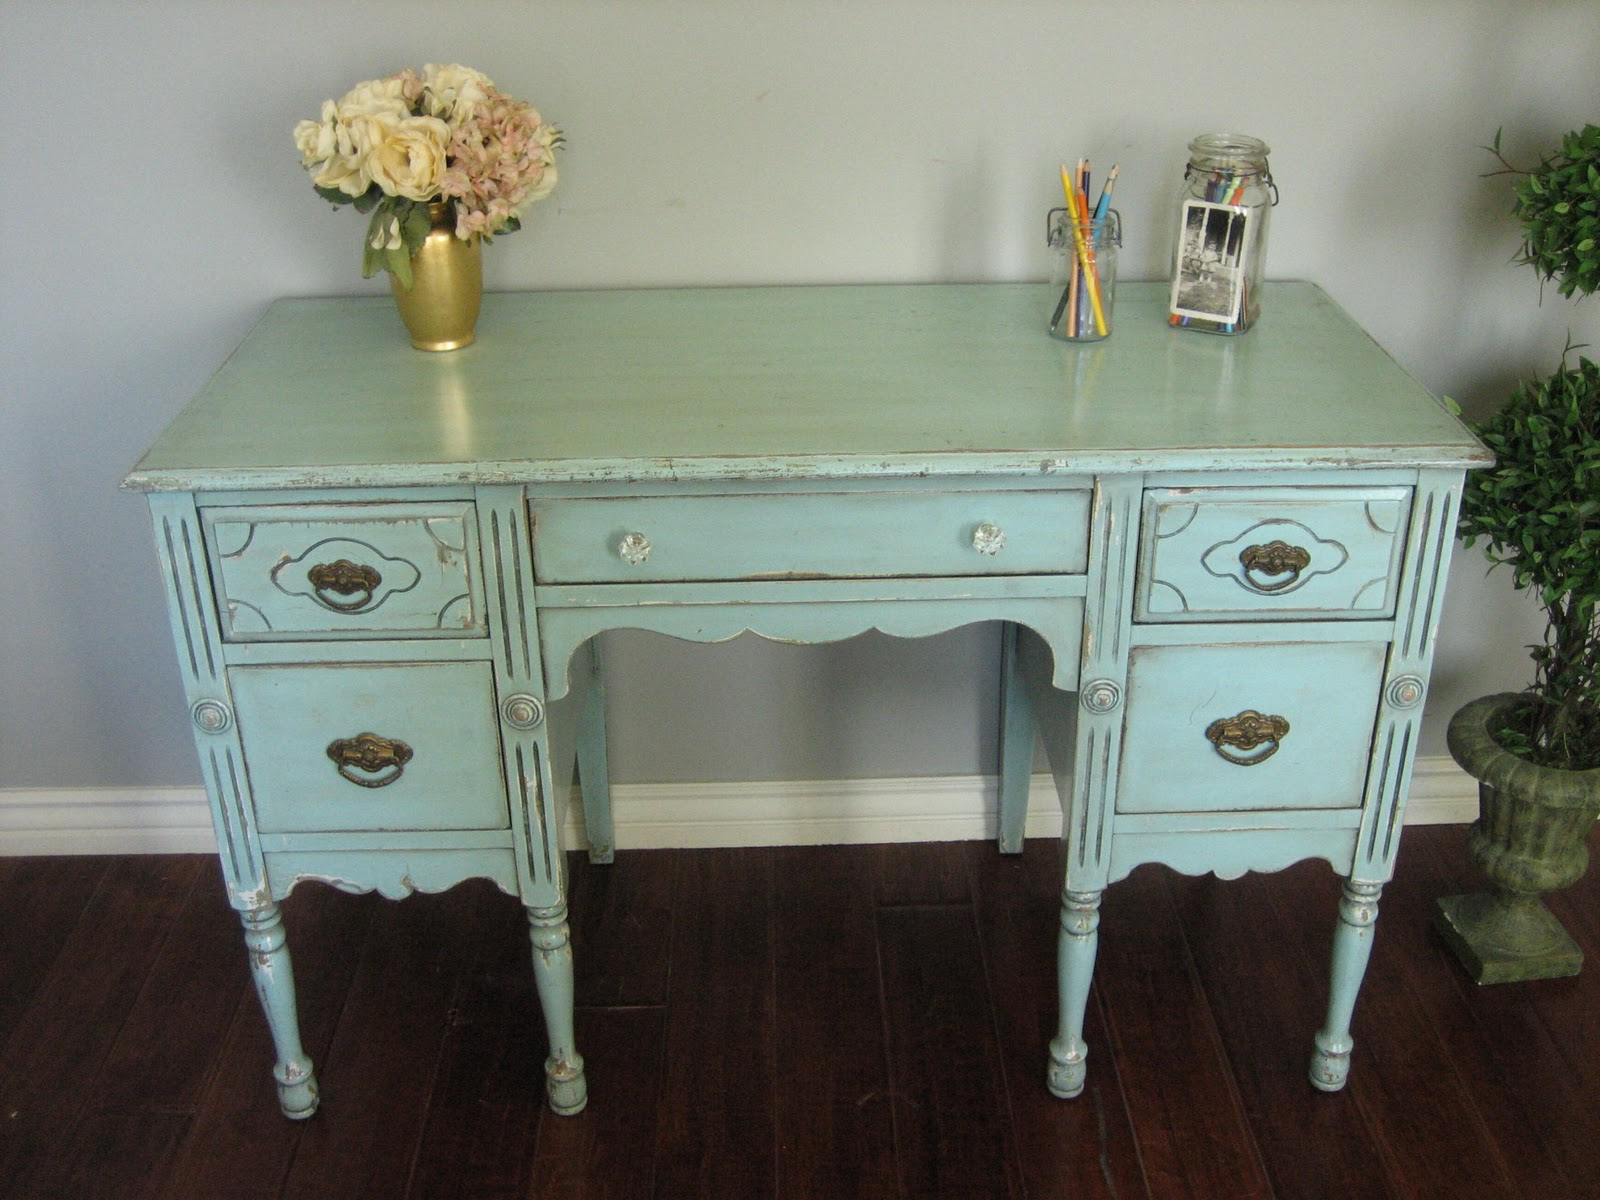 Painting Wood Furniture Shabby Chic http://europaintfinishes.blogspot.com/2011/02/shabby-chic-desk.html